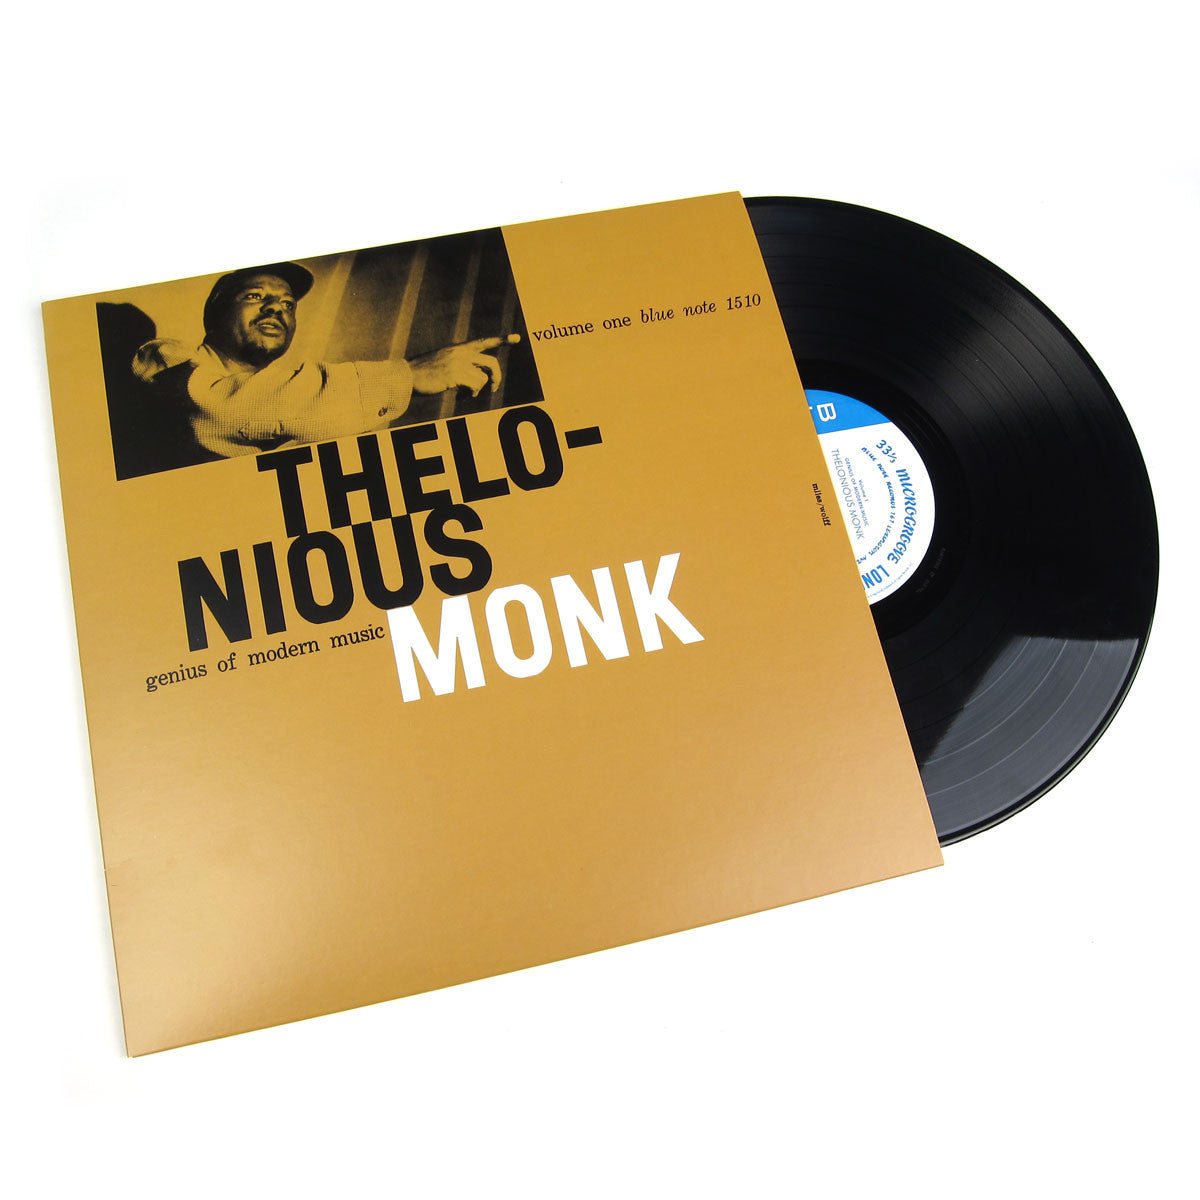 Thelonious Monk: Genius Of Modern Music Volume One (Mono) Vinyl LP